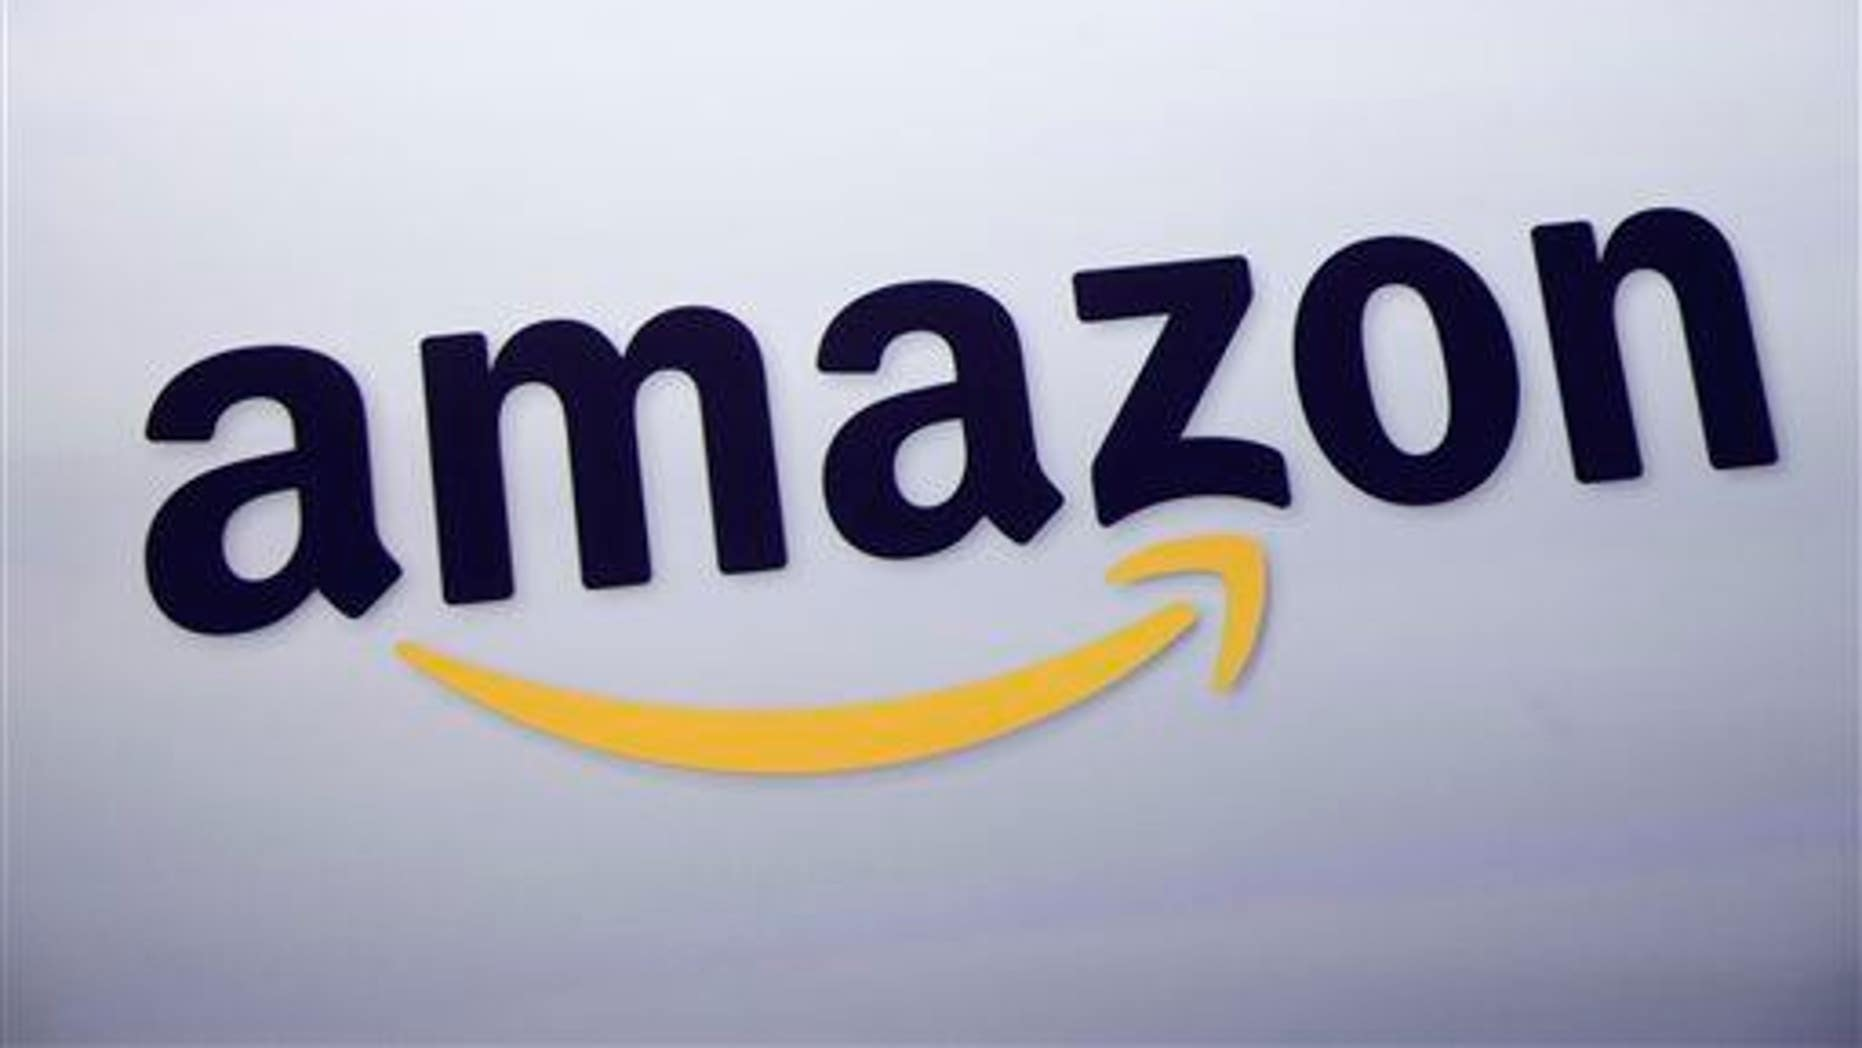 The Amazon.com logo is displayed at a news conference in New York.